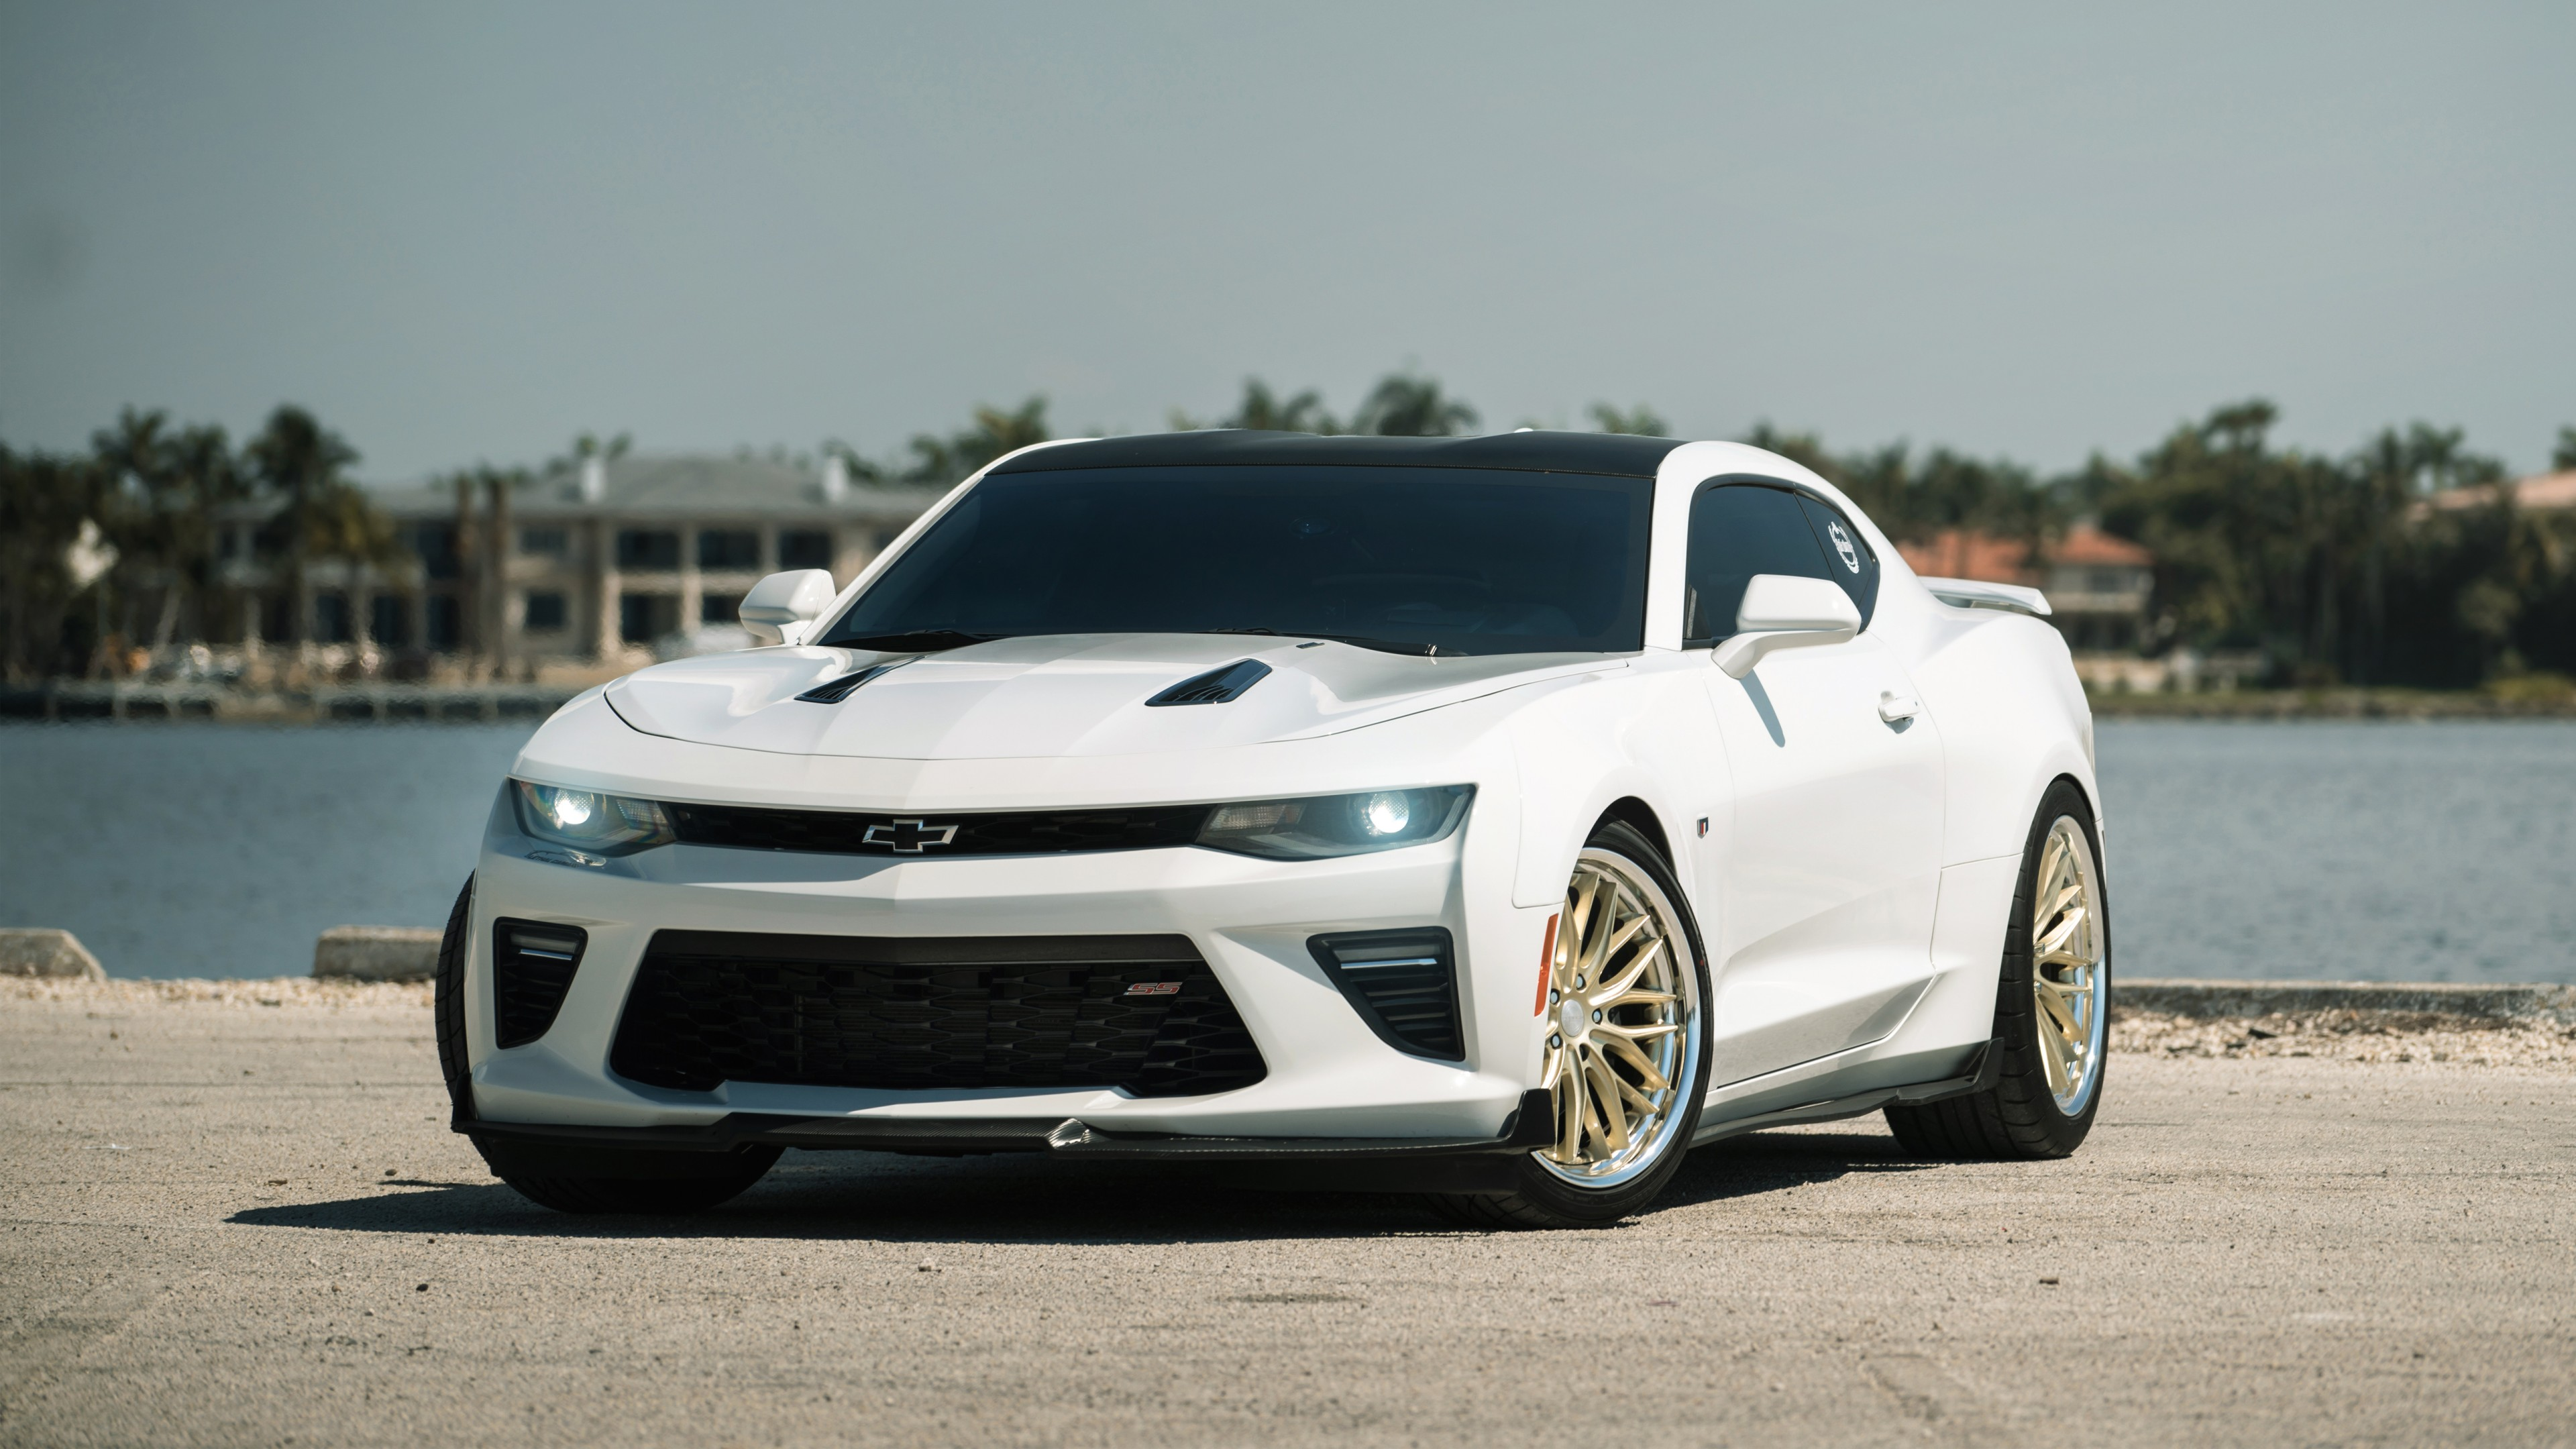 Chevrolet Camaro Ss 5k Wallpaper Hd Car Wallpapers Id